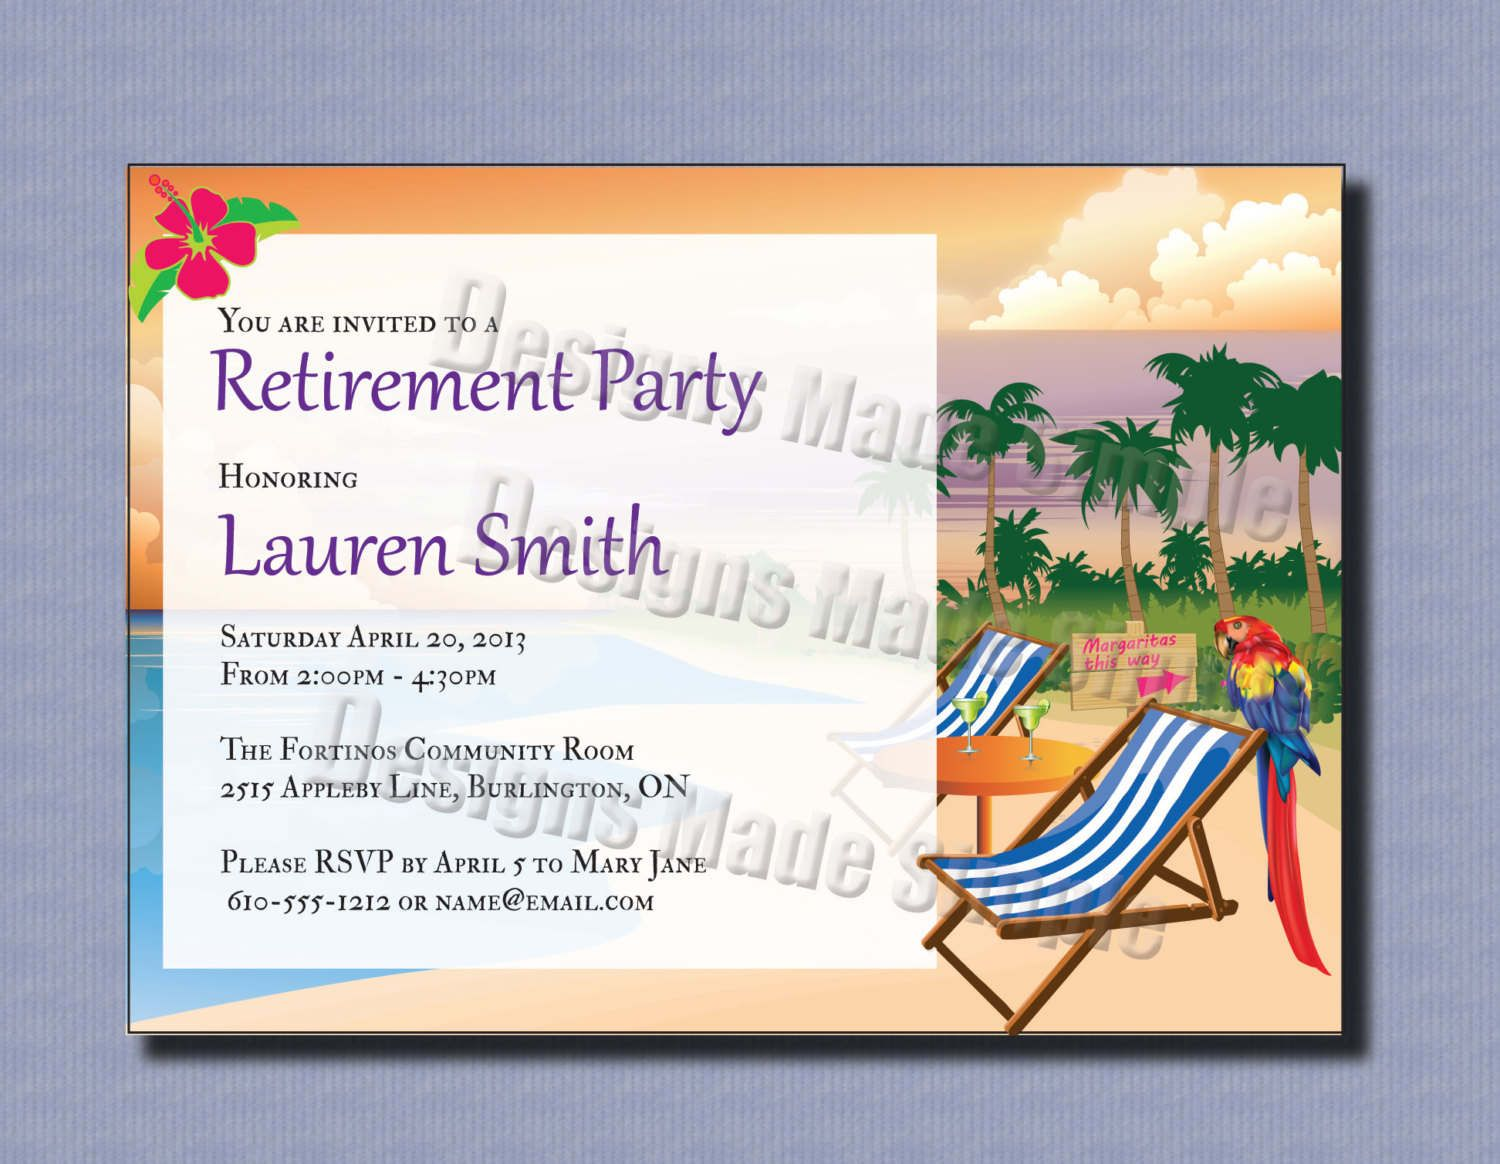 retirement party invitations template 2xizvtxM – Retirement Party Flyer Template